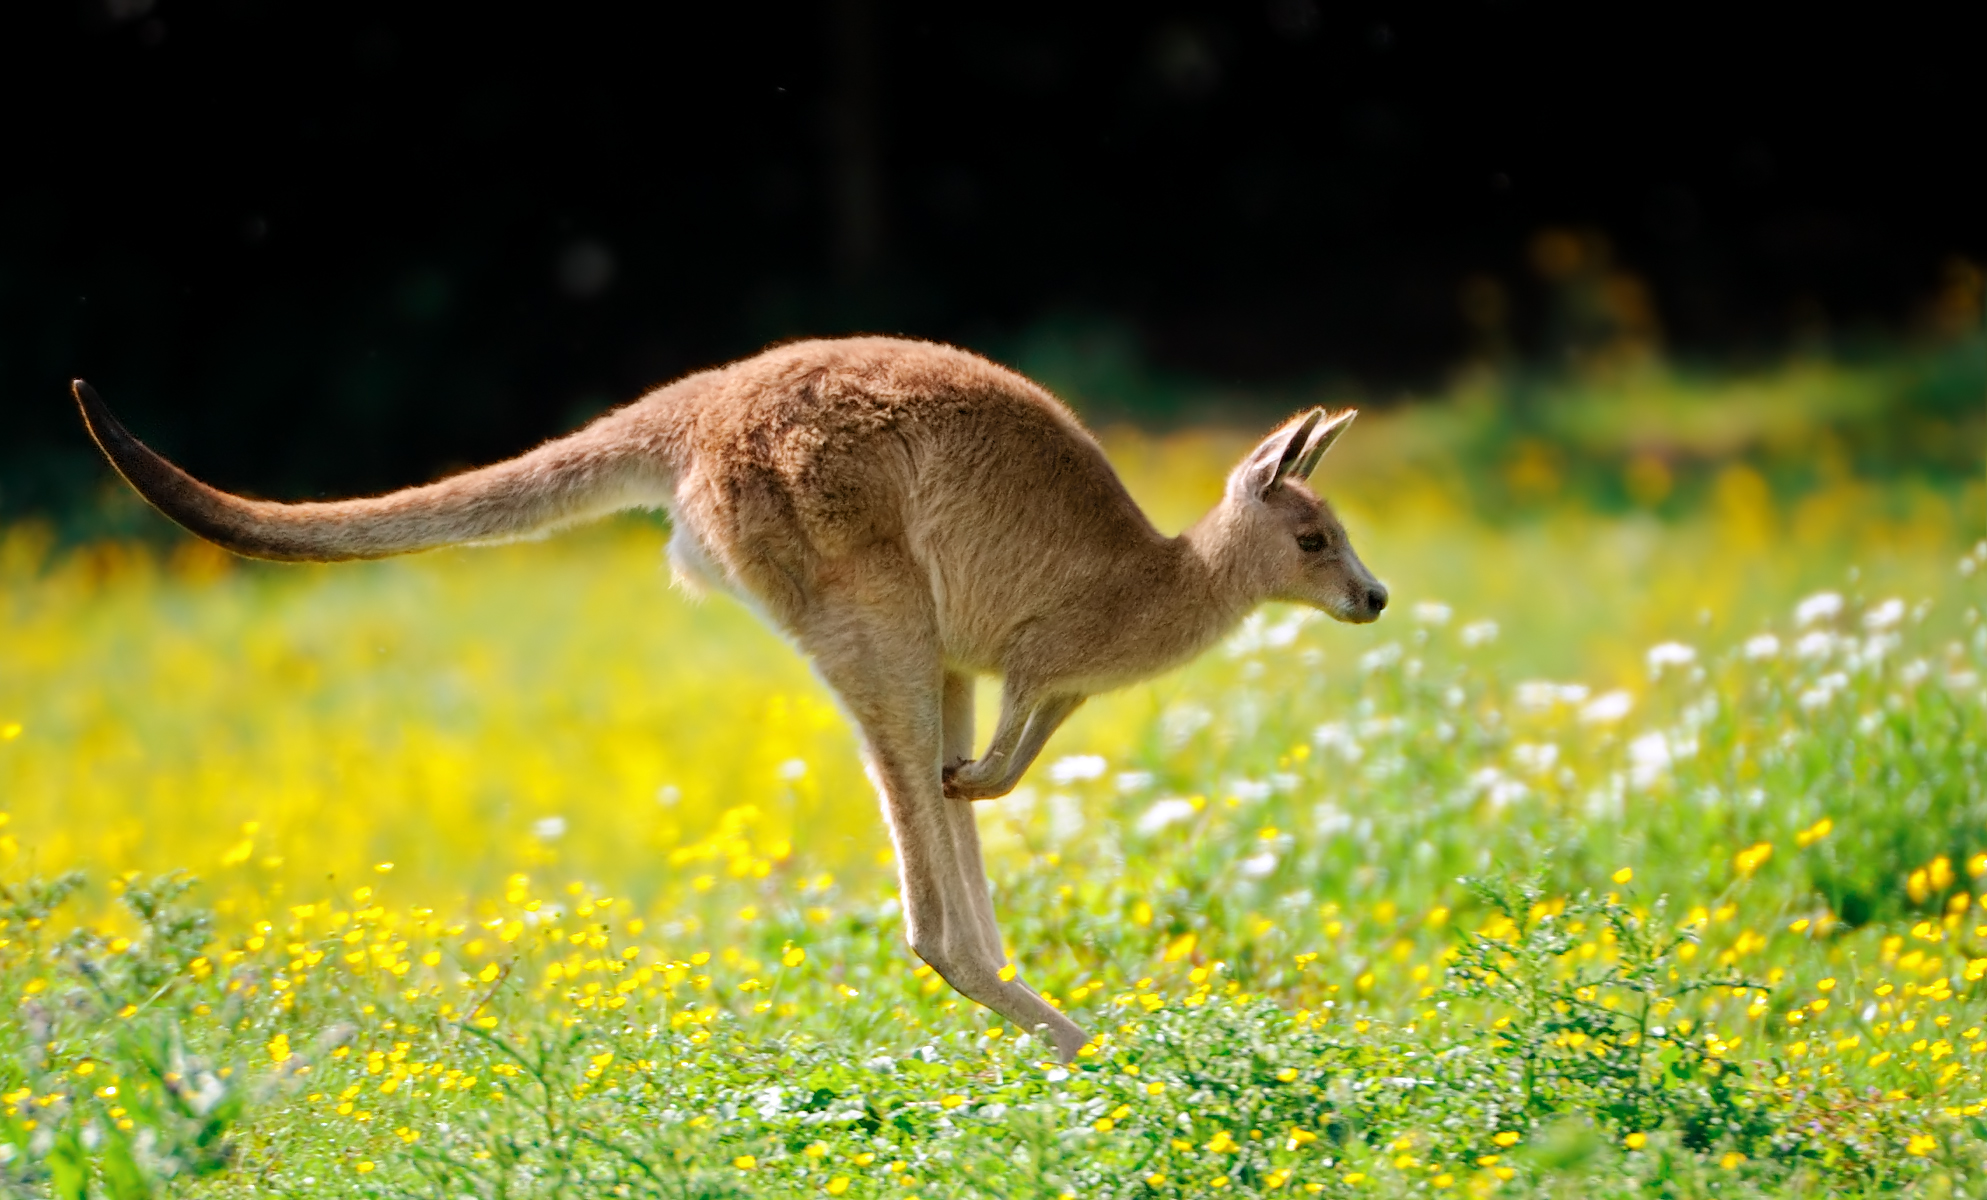 Kangaroo in Grass